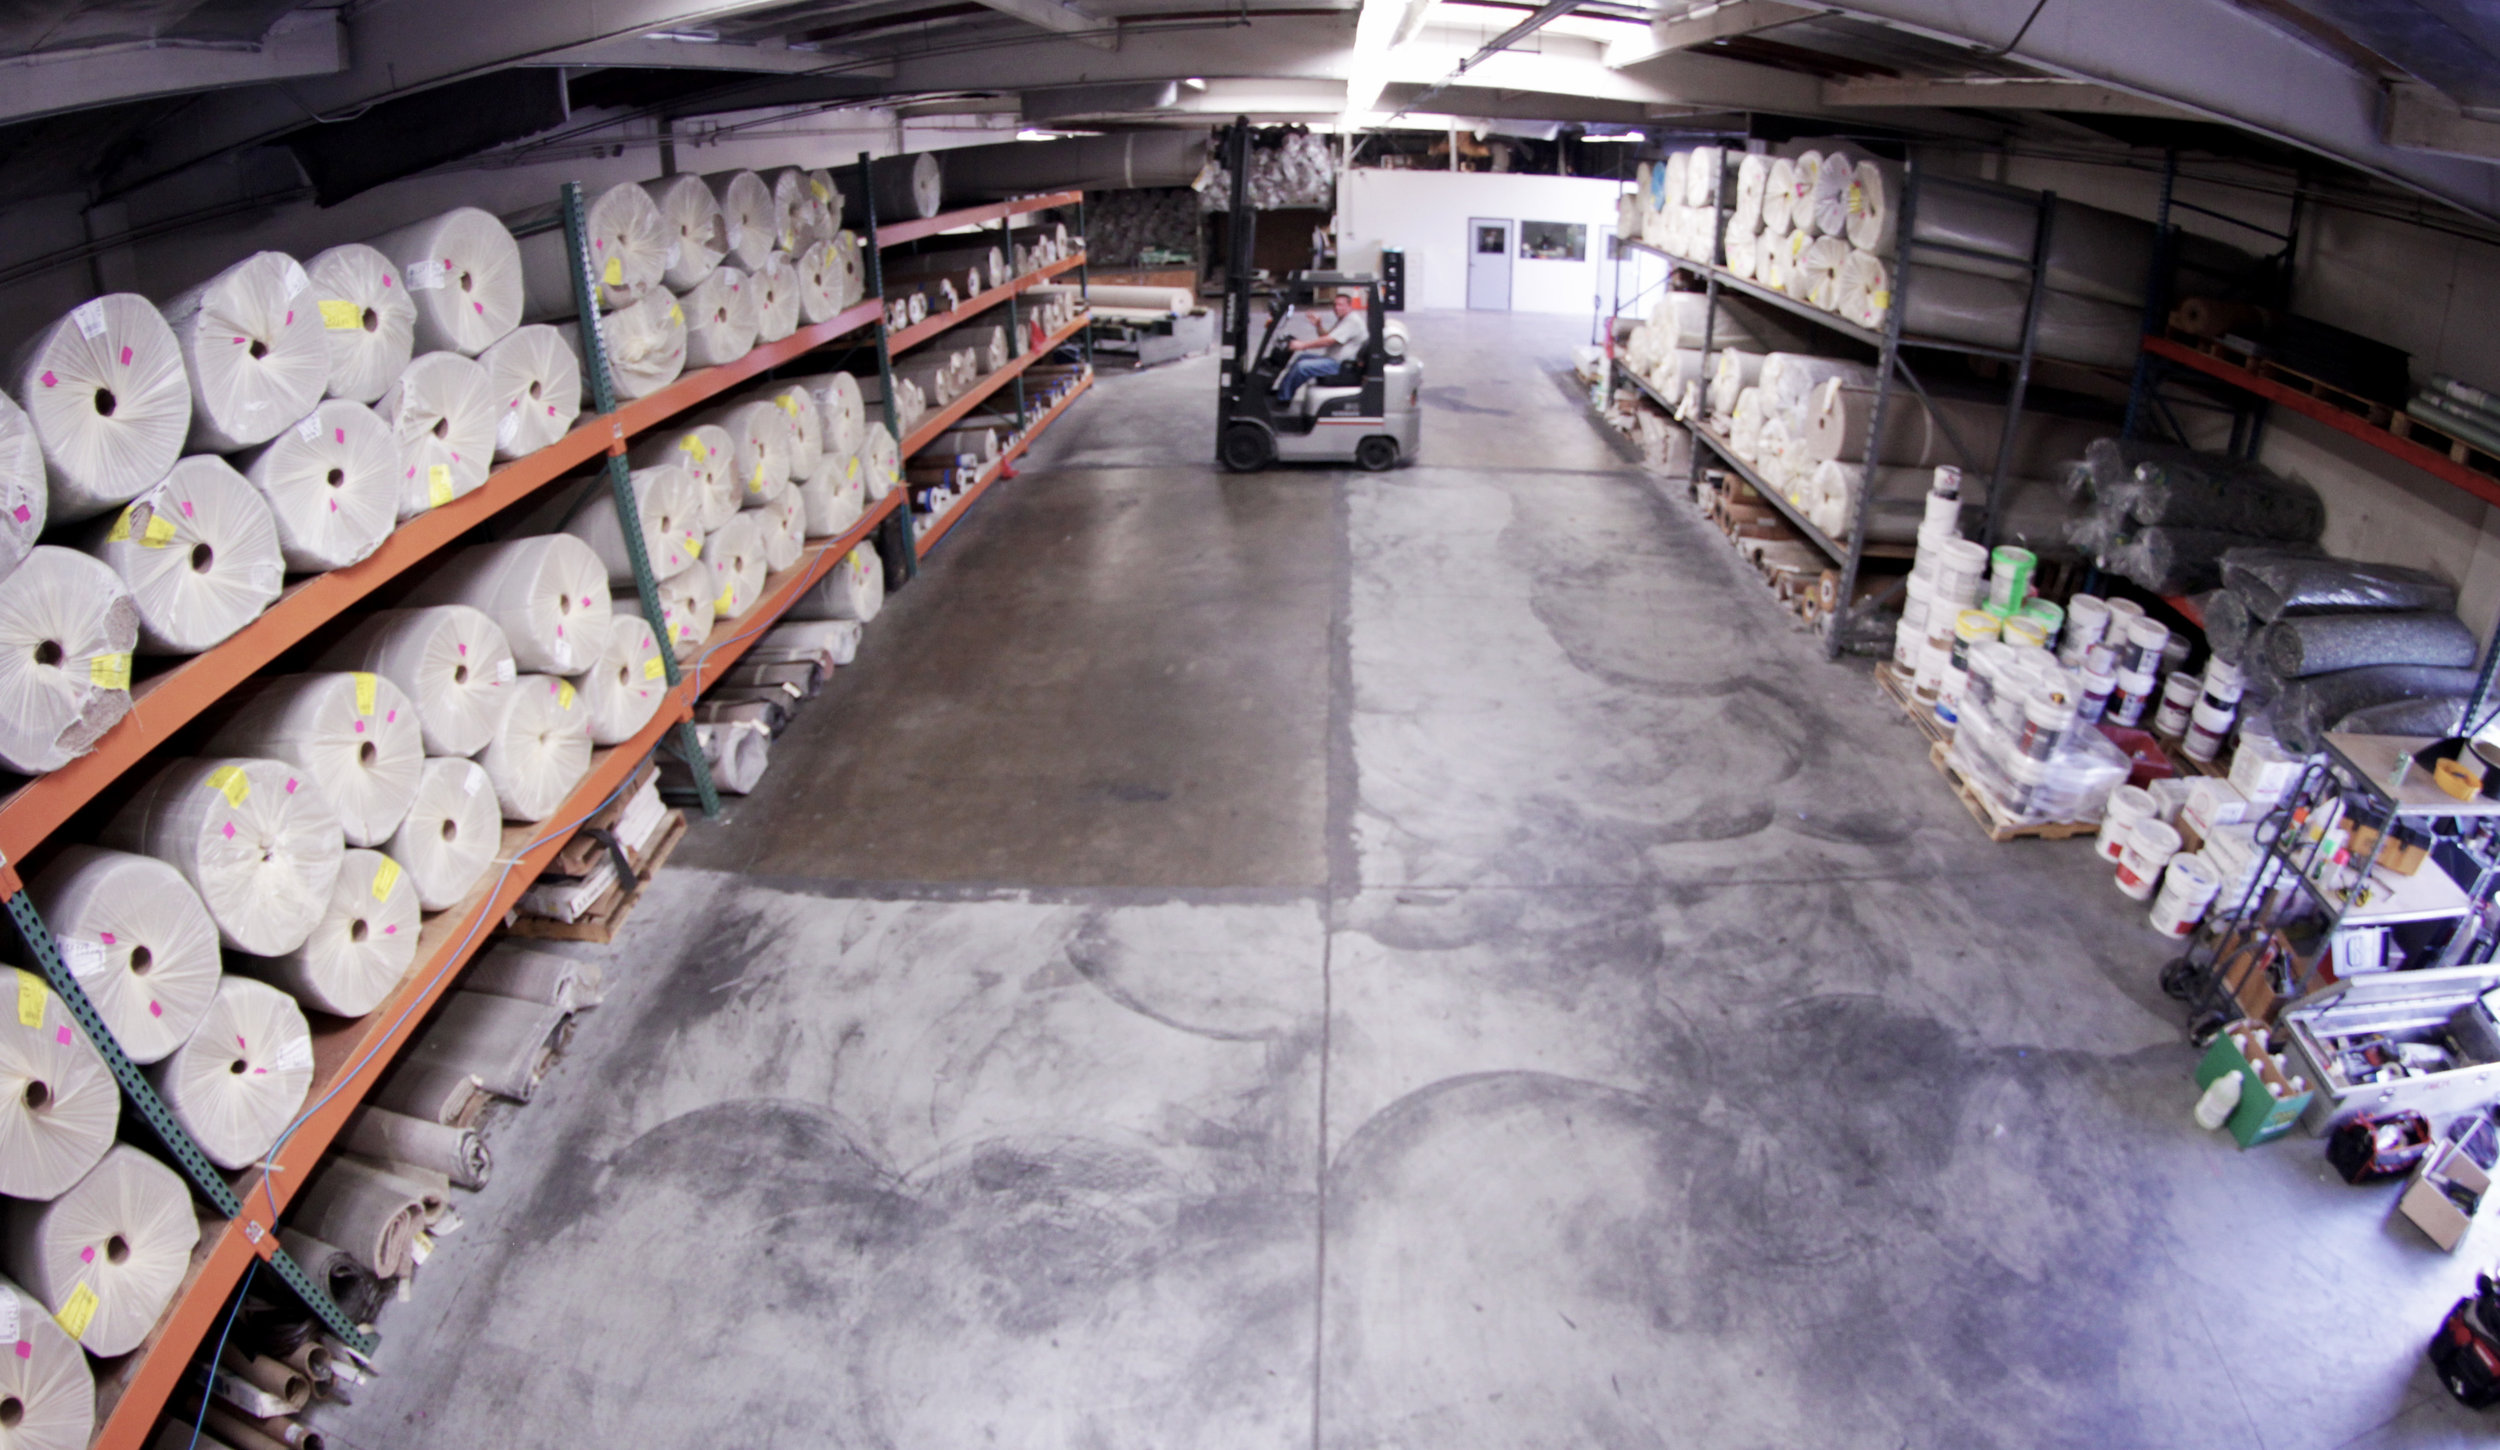 Floor Contracting - we are a certified installer and stocking dealer for all major brands